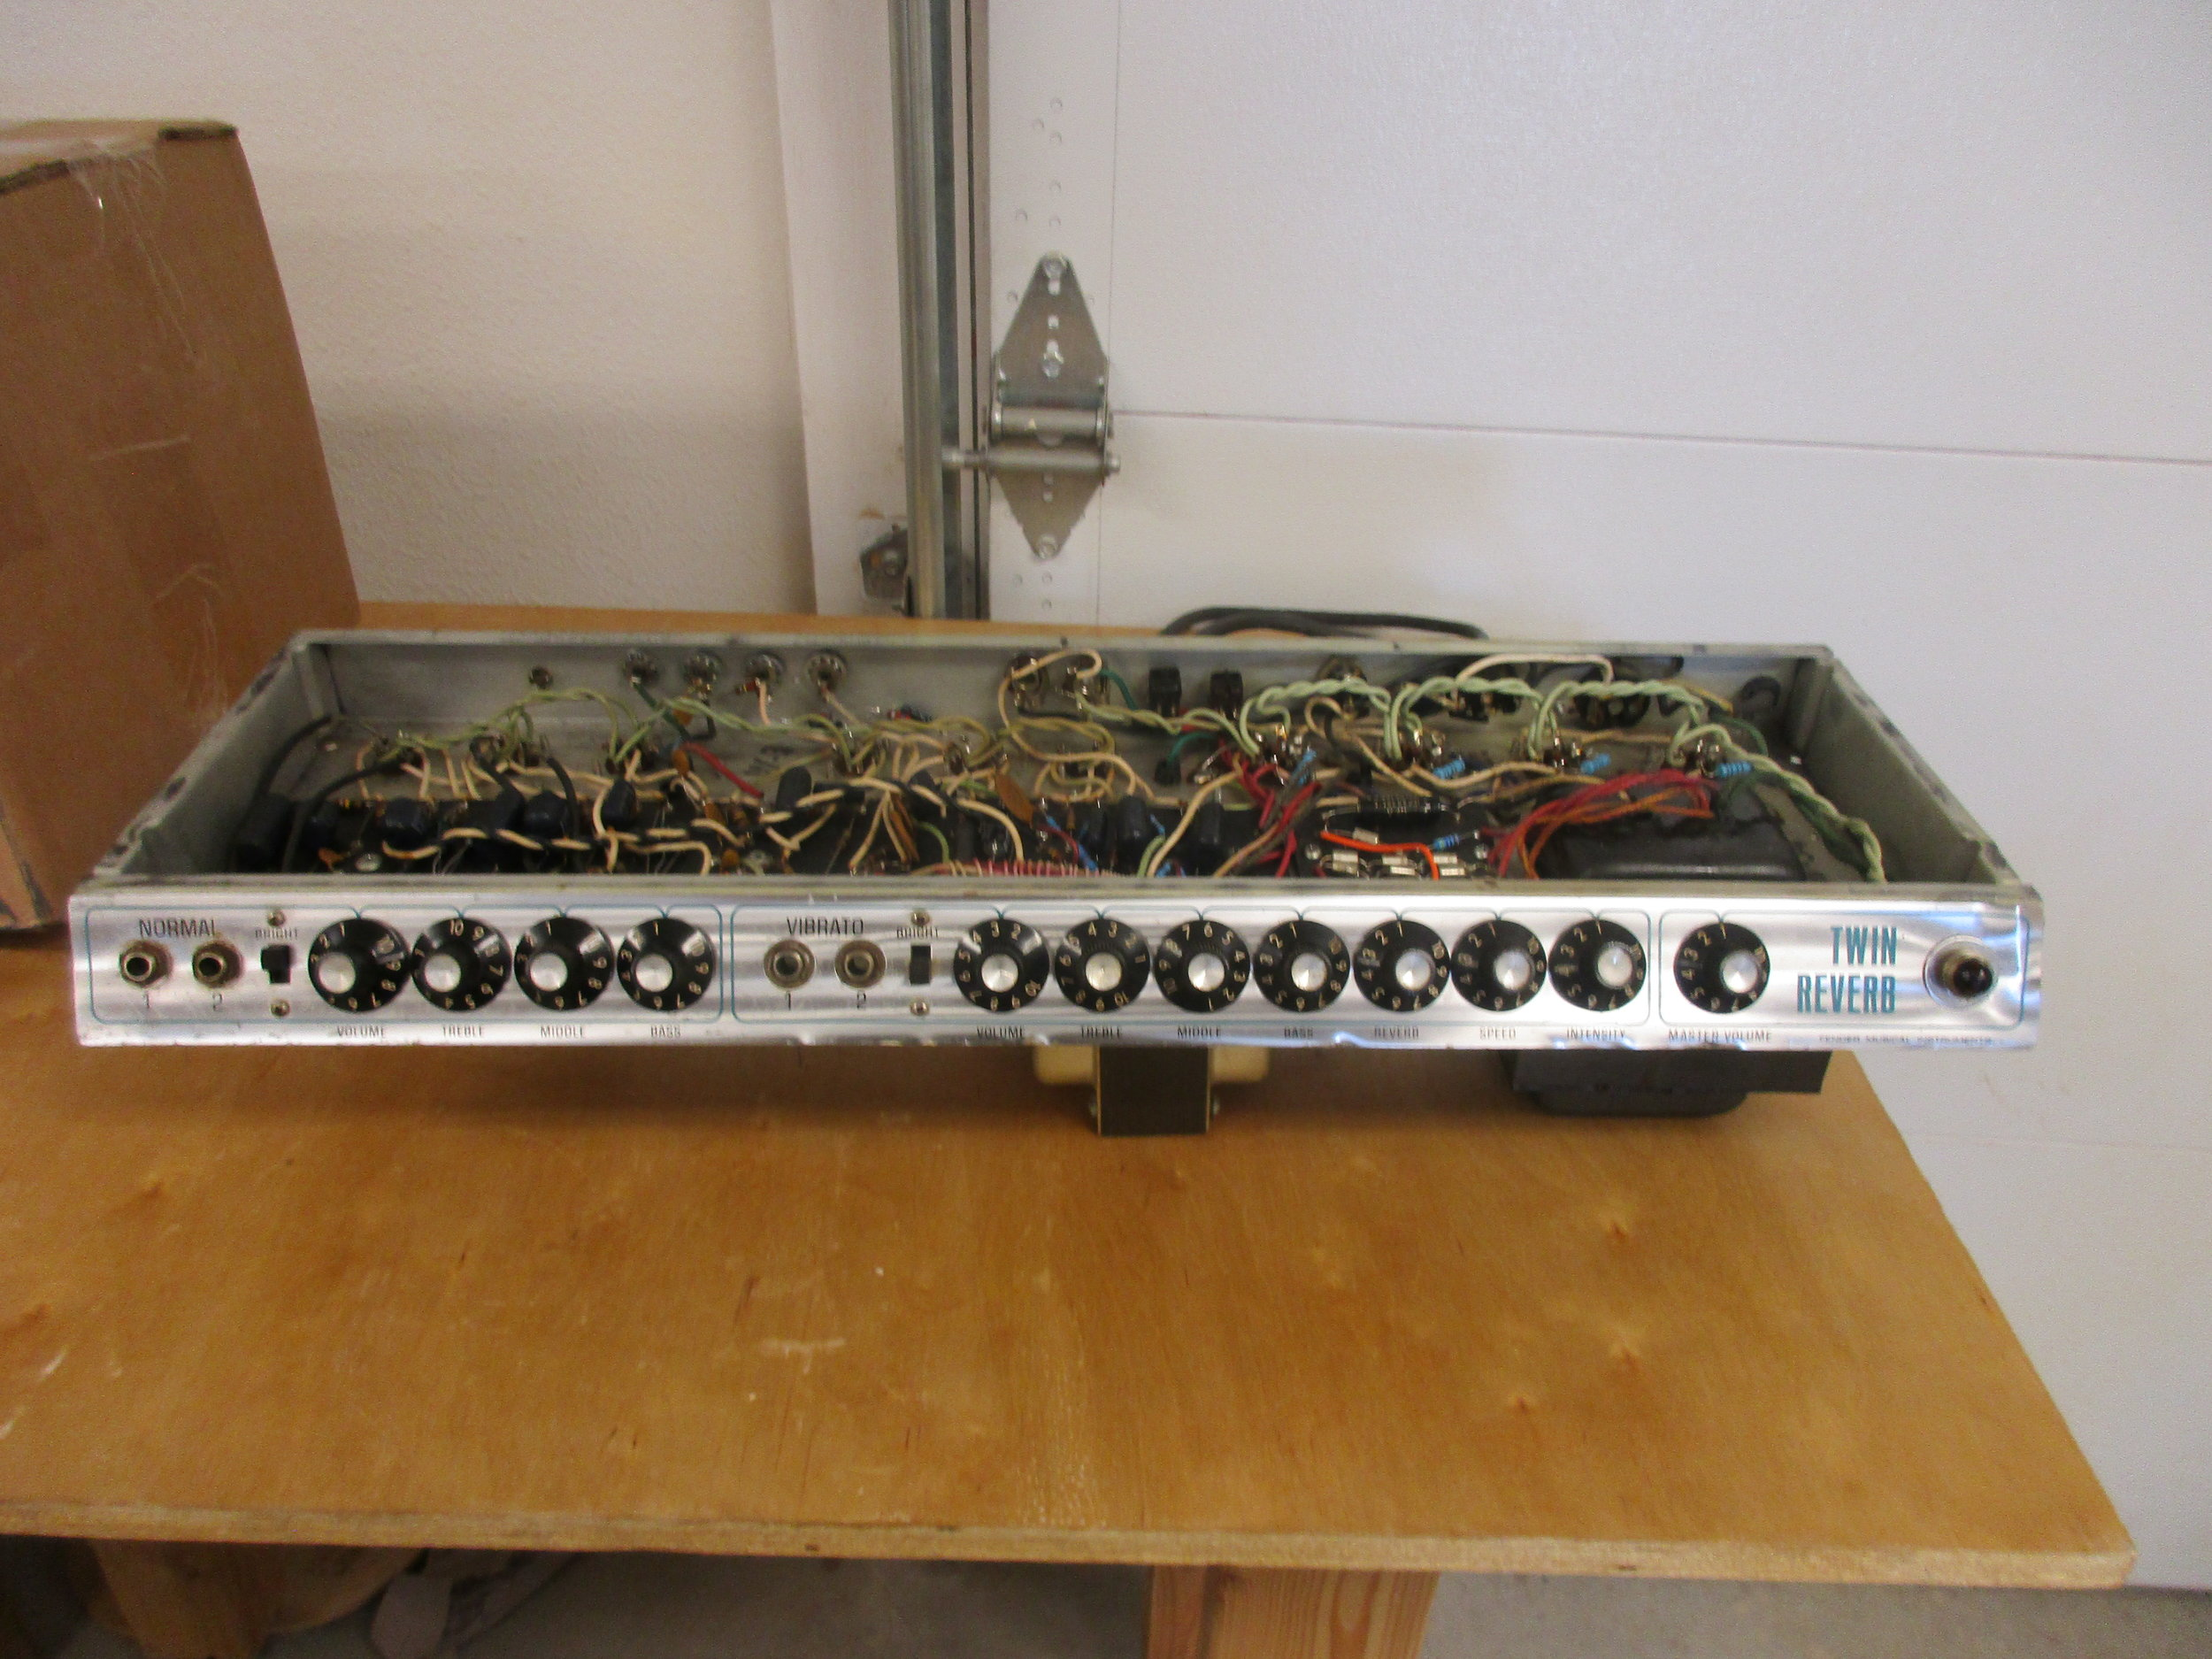 This Master Volume Silverface Twin Reverb came to me needing some help. I re-capped it, cleaned up tube sockets, and modded the circuit to Blackface Twin specs. I also made a few little changes of my own that I do to all Twins that people rave about. The owner was very pleased with his new amp!